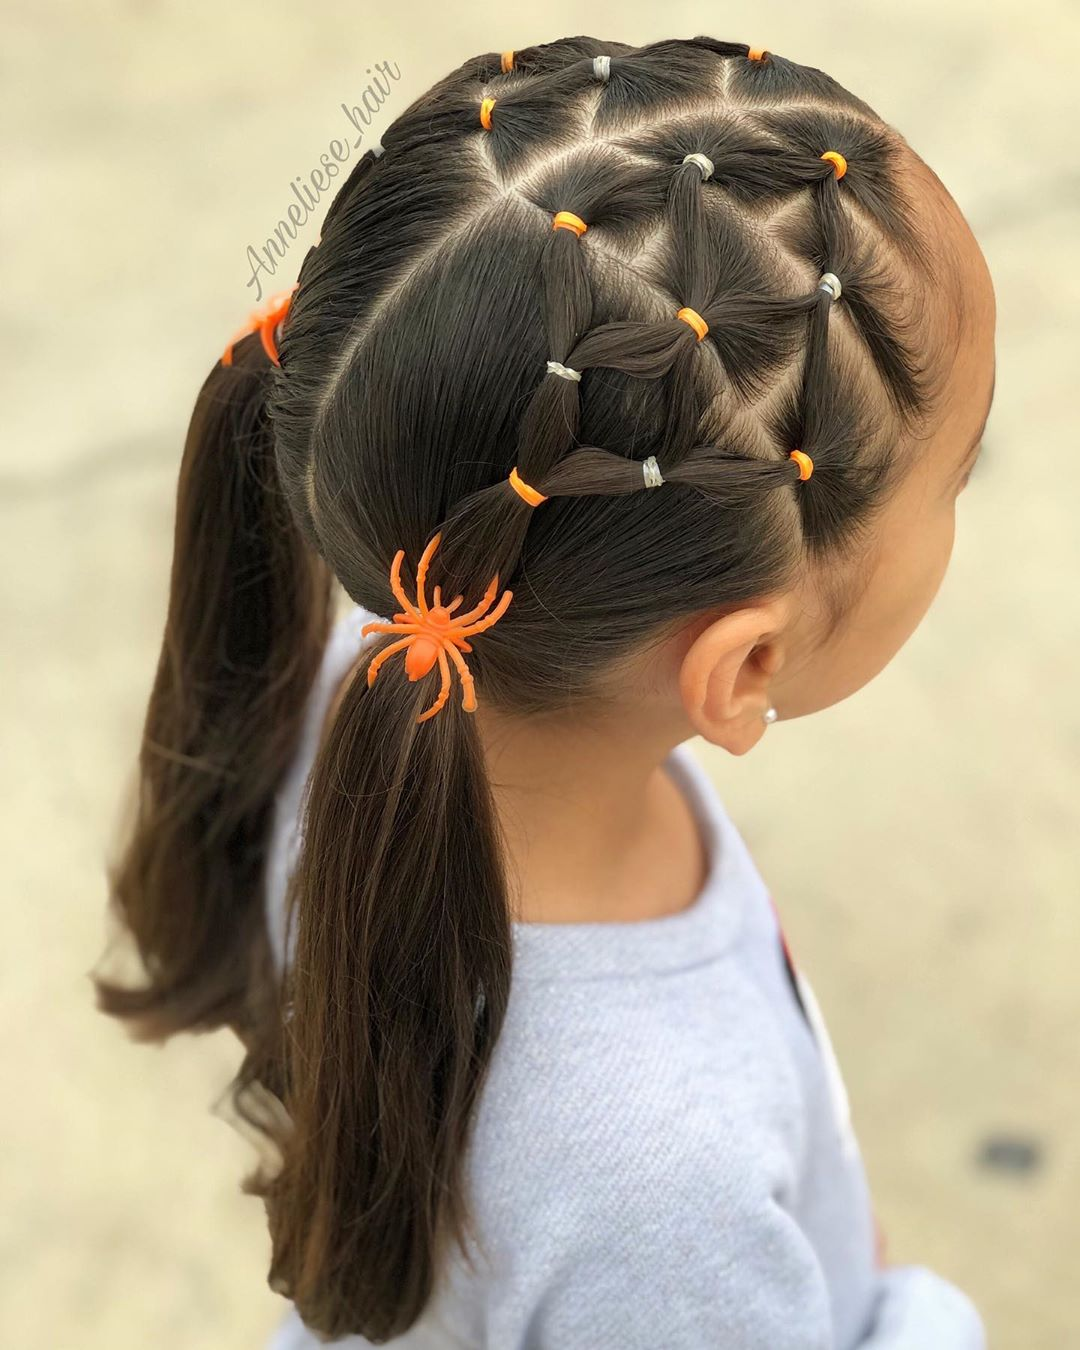 🕸🕷🧡🕸🕷🧡 Spider Web Elastic Style In Hairoftheday - Hairstyles For Girls